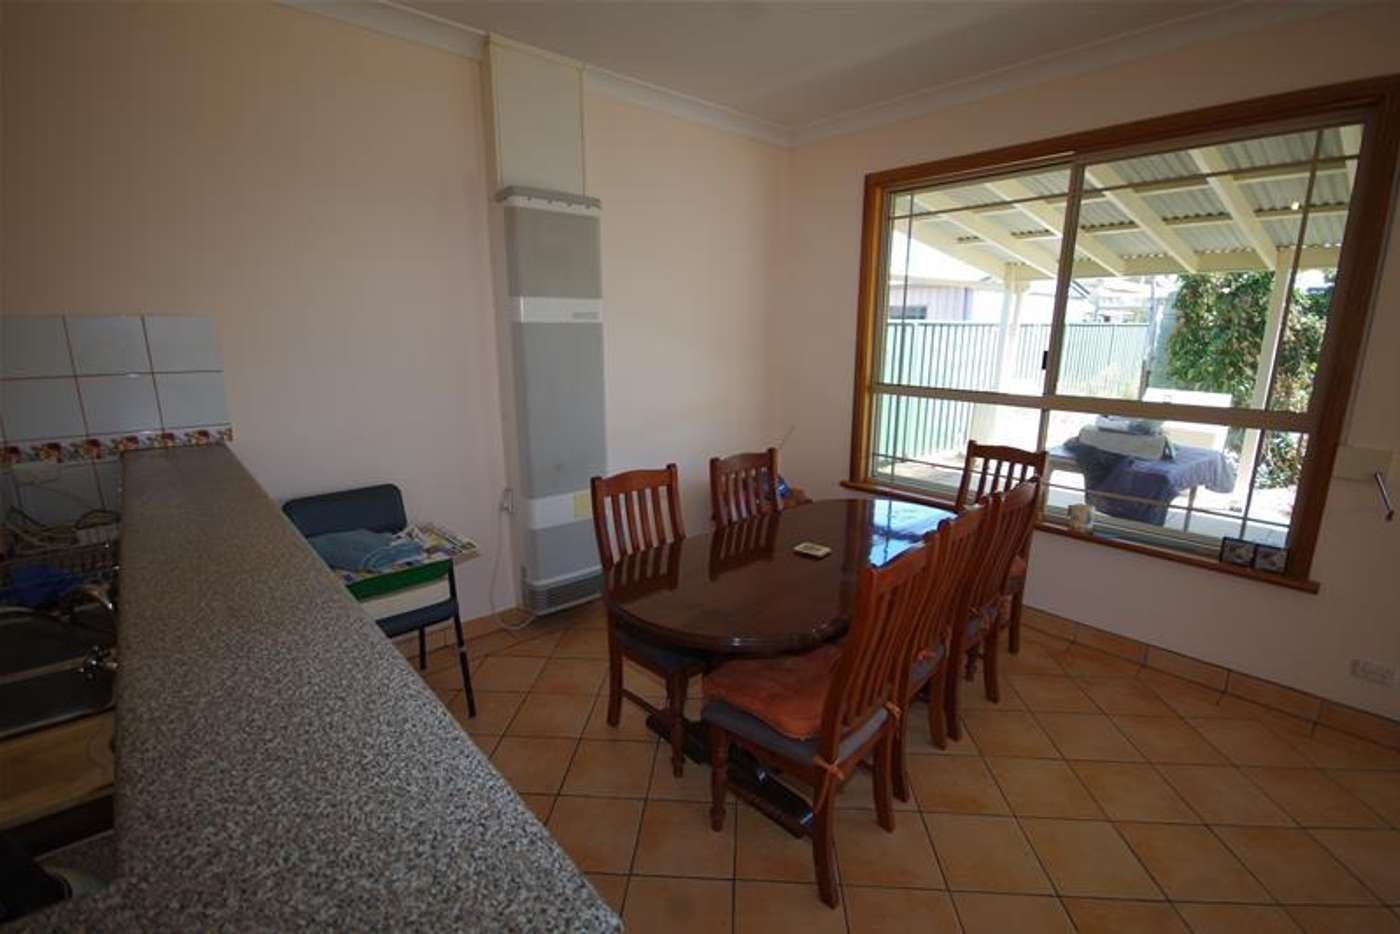 Sixth view of Homely house listing, 32 Park Terrace, Edithburgh SA 5583